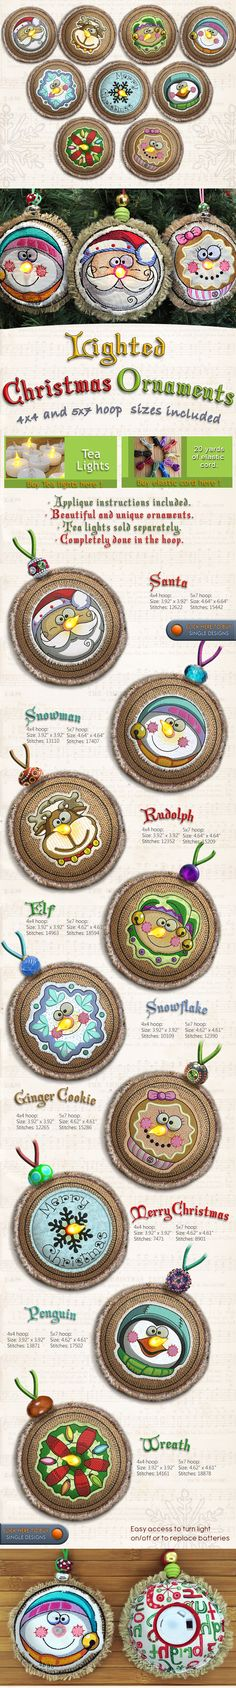 LIGHTED CHRISTMAS ORNAMENTS - Embroidery Designs Free Embroidery Design Patterns Applique